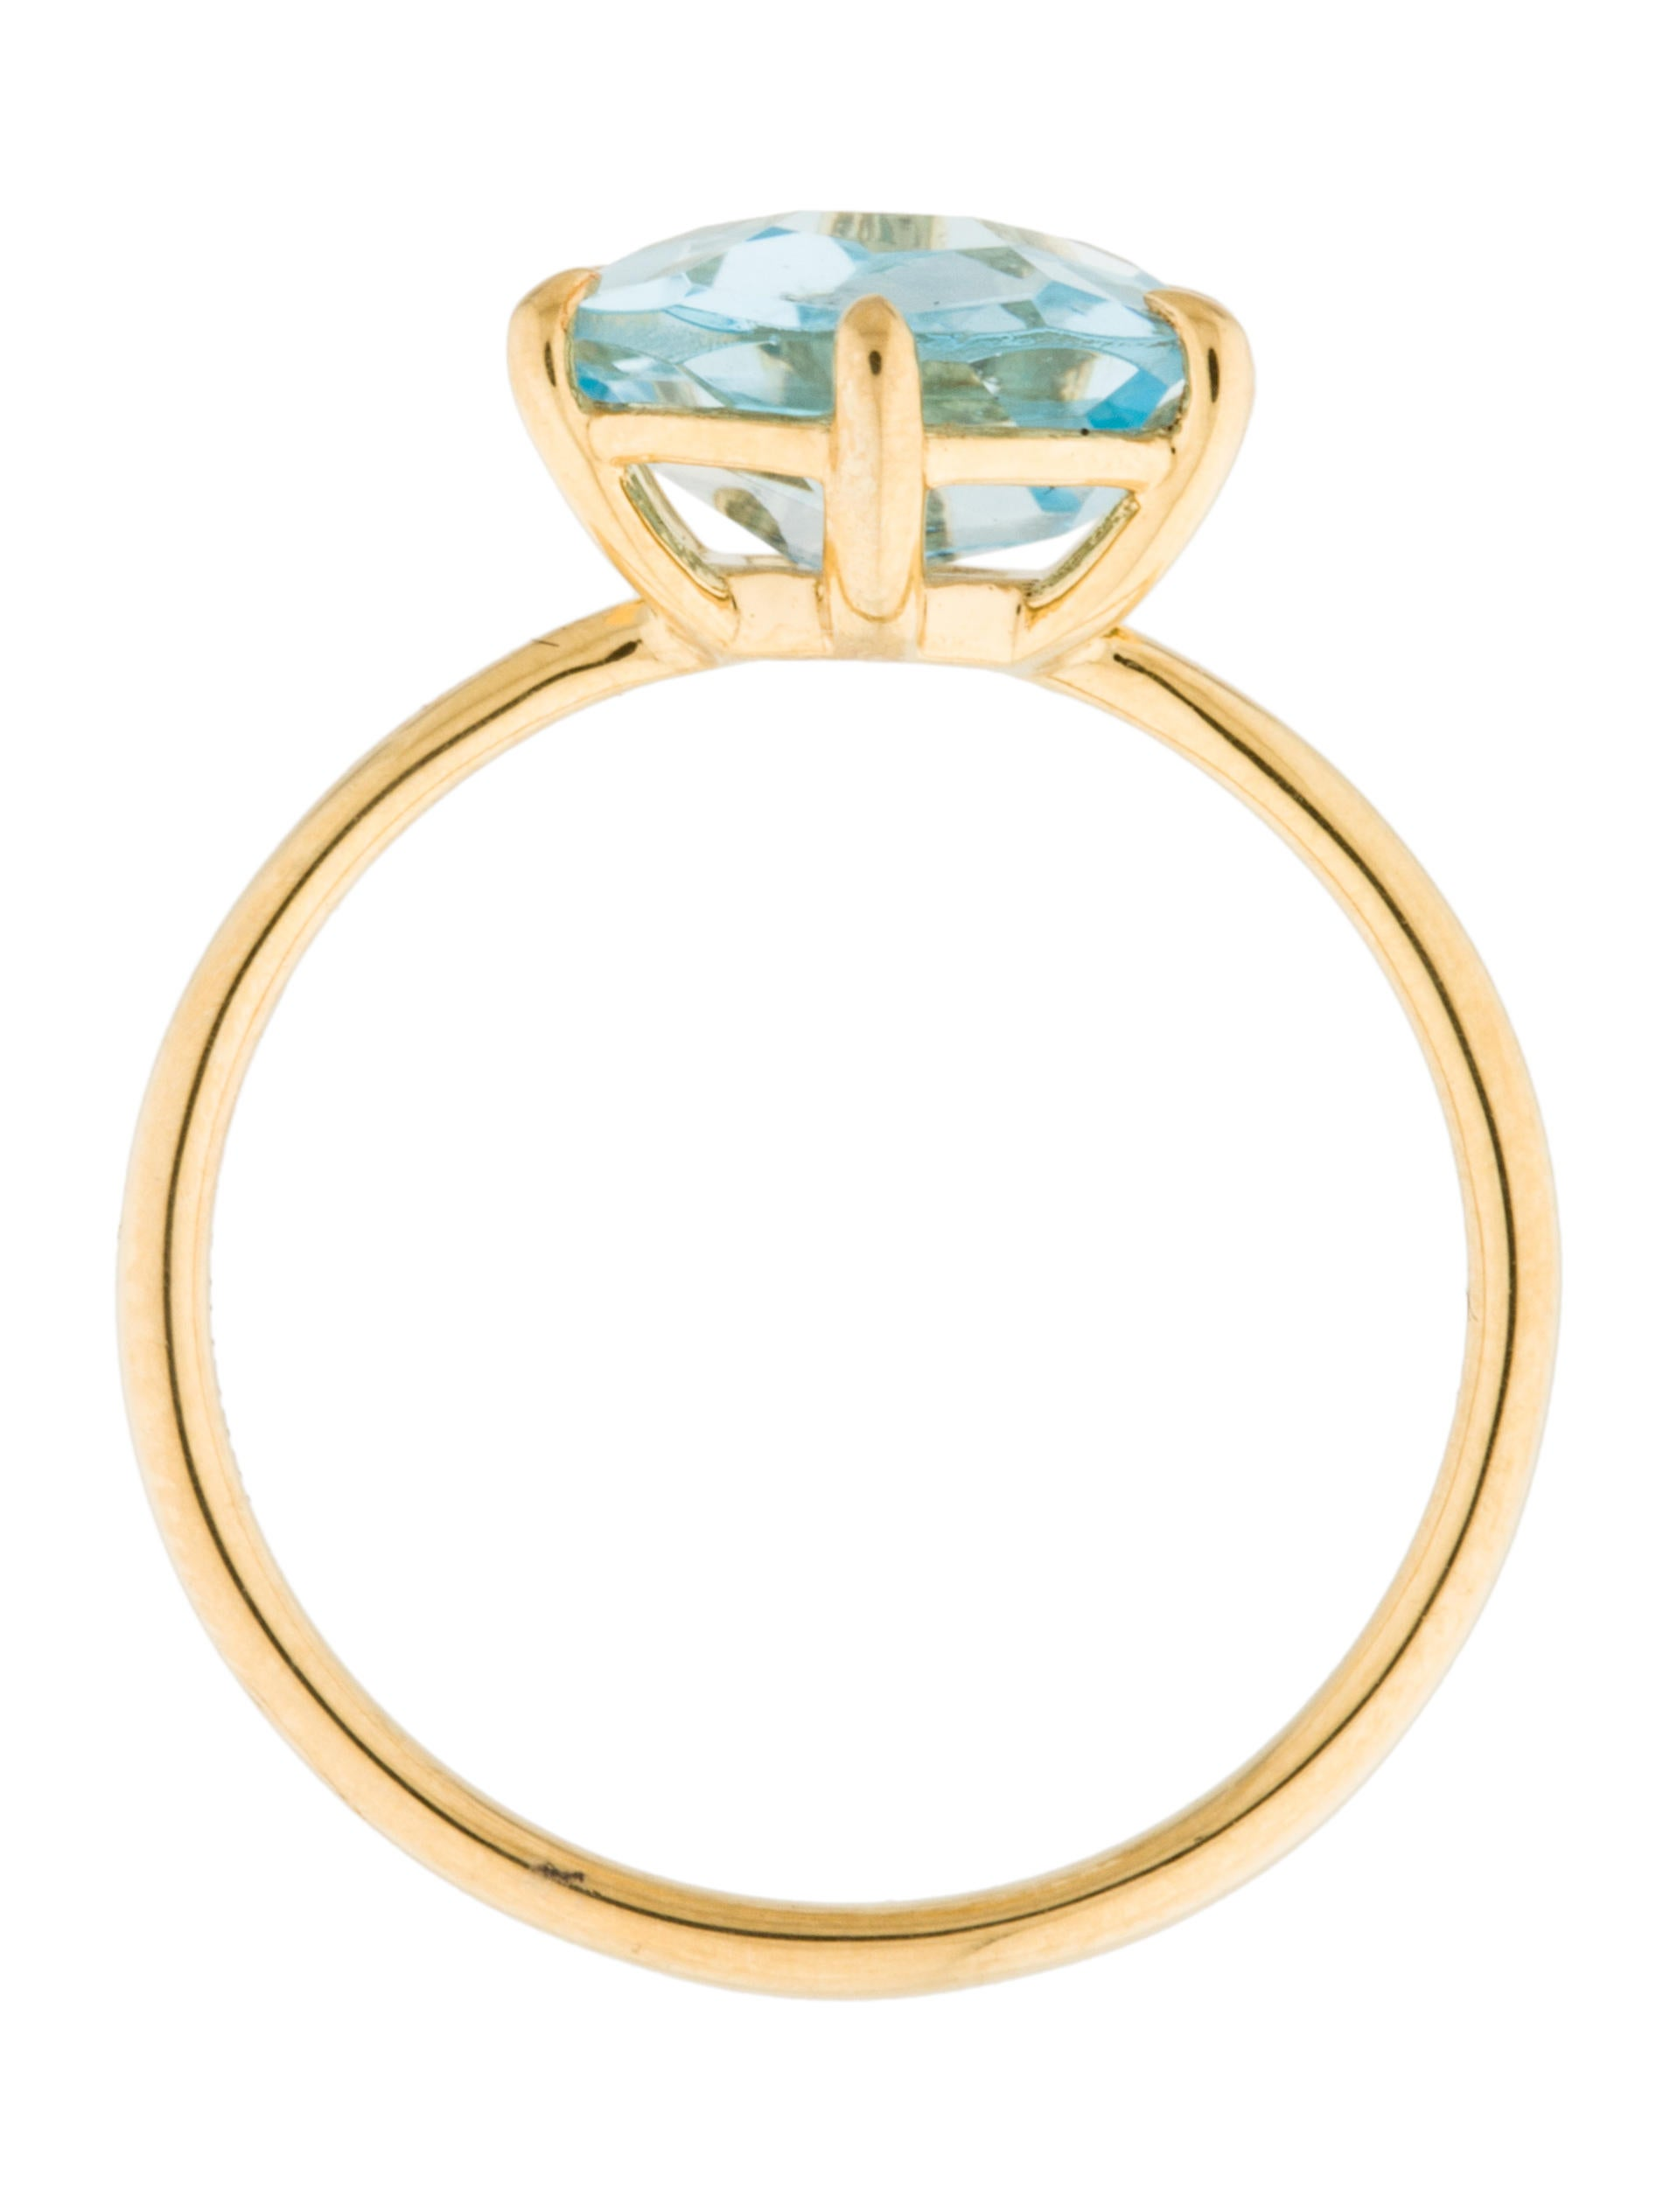 topaz single men Men's women's luxury automatic accessories & storage swiss watches  directly to the north and the south is a single full cut swiss blue topaz gemstone,.